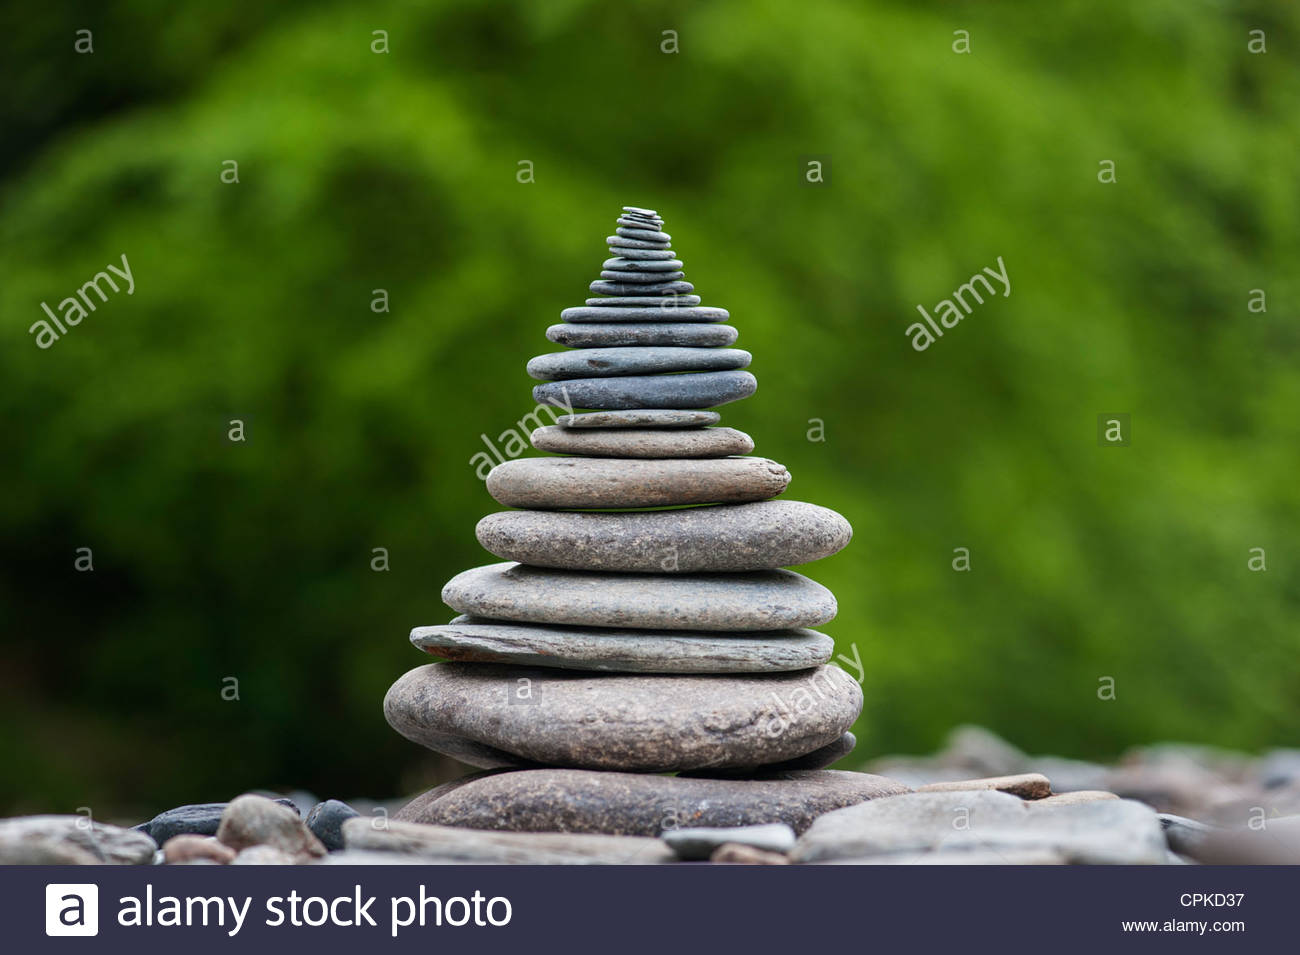 Stacked pebbles in a pyramid shape - Stock Image